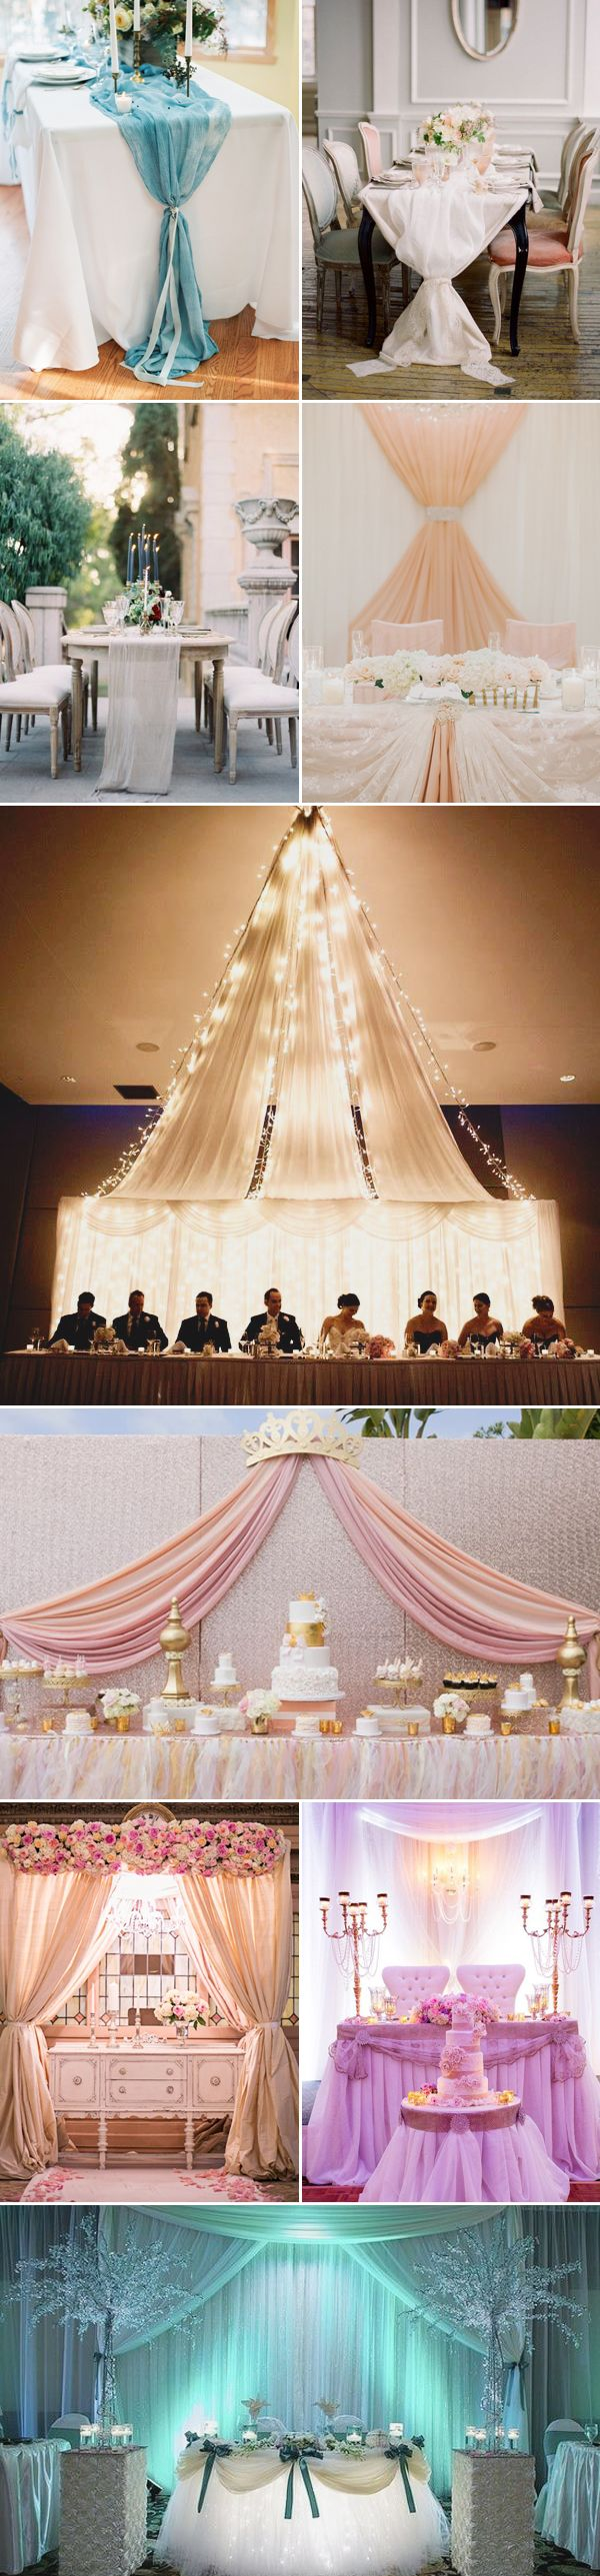 If you are looking for an efficient way to dramatically transform your wedding venue , consider using drapery! Whether it's an luxurious ball room wedding, a rustic barn nuptials, or a tented affair, drapery is a decorative element that makes a huge impact by transforming any simple space to an extraordinary affair. Popular ideas include …